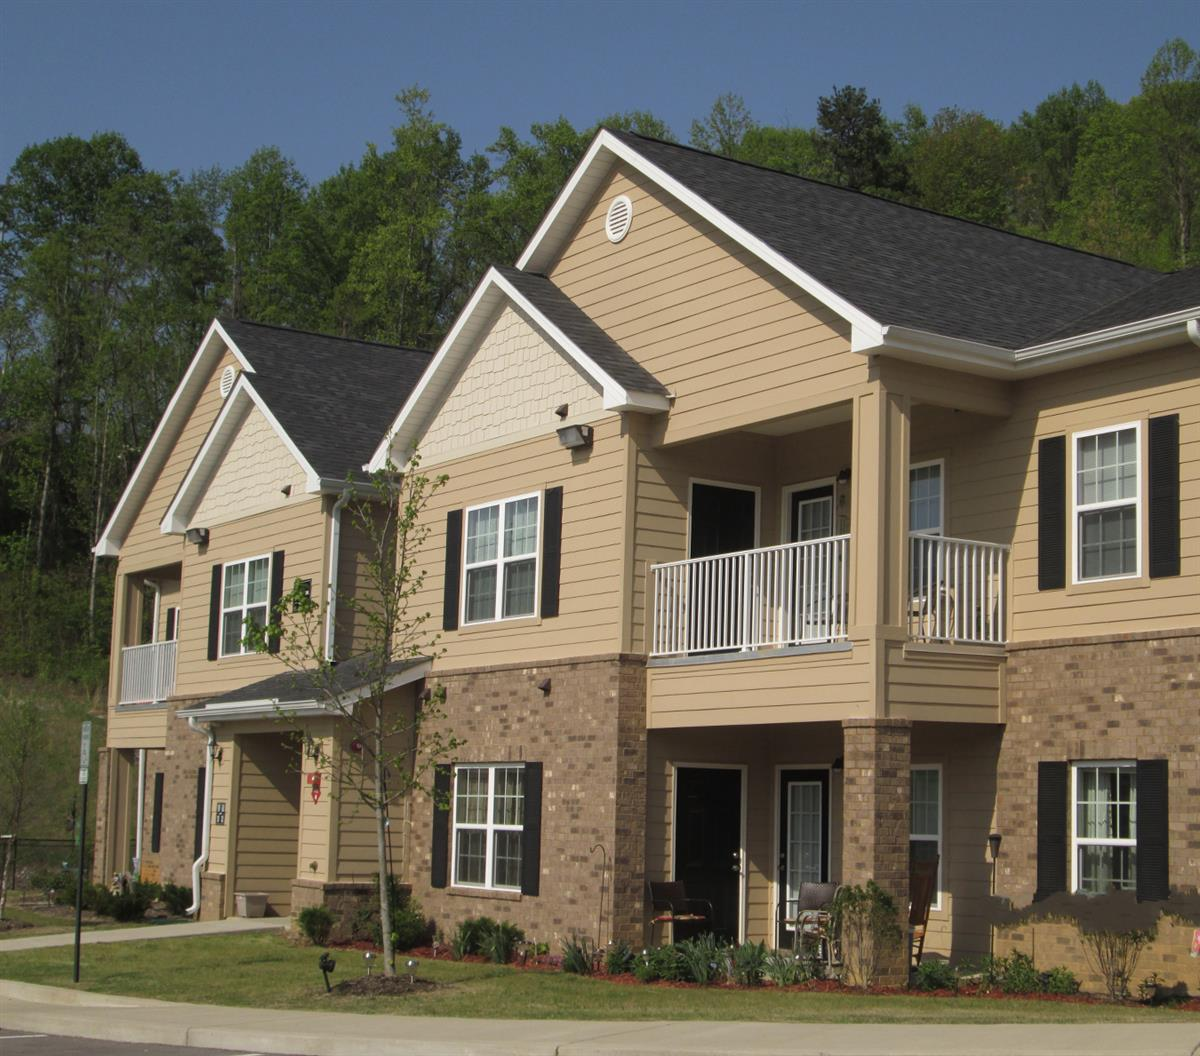 County Apartments: Apartment In Kingsport, TN